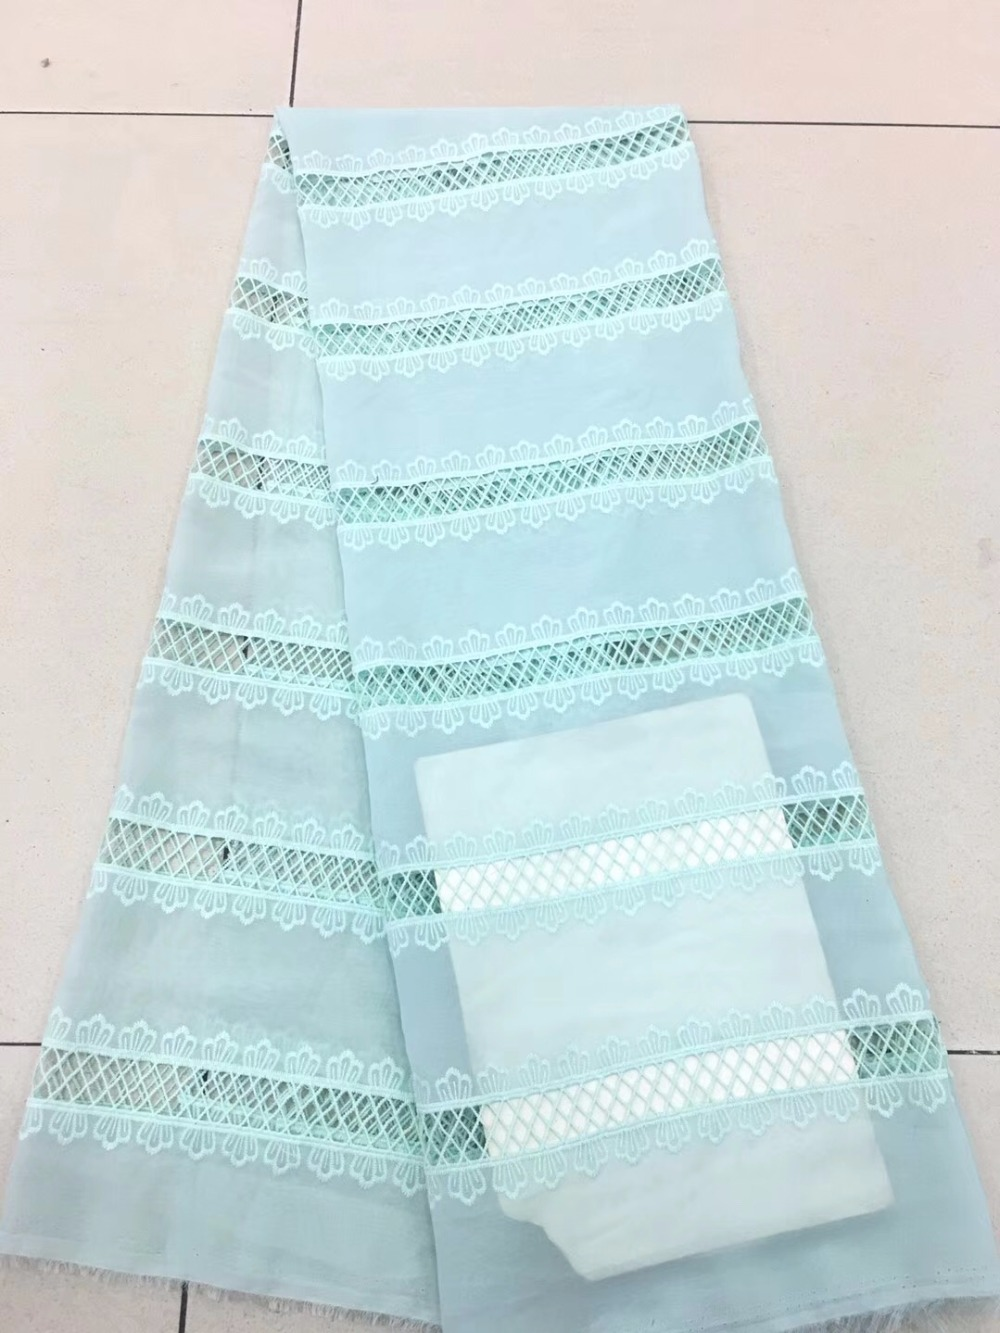 2018 New chiffon tulle lace fabric, bride lace fabric excellent quality Nigerian lace fabric2018 New chiffon tulle lace fabric, bride lace fabric excellent quality Nigerian lace fabric